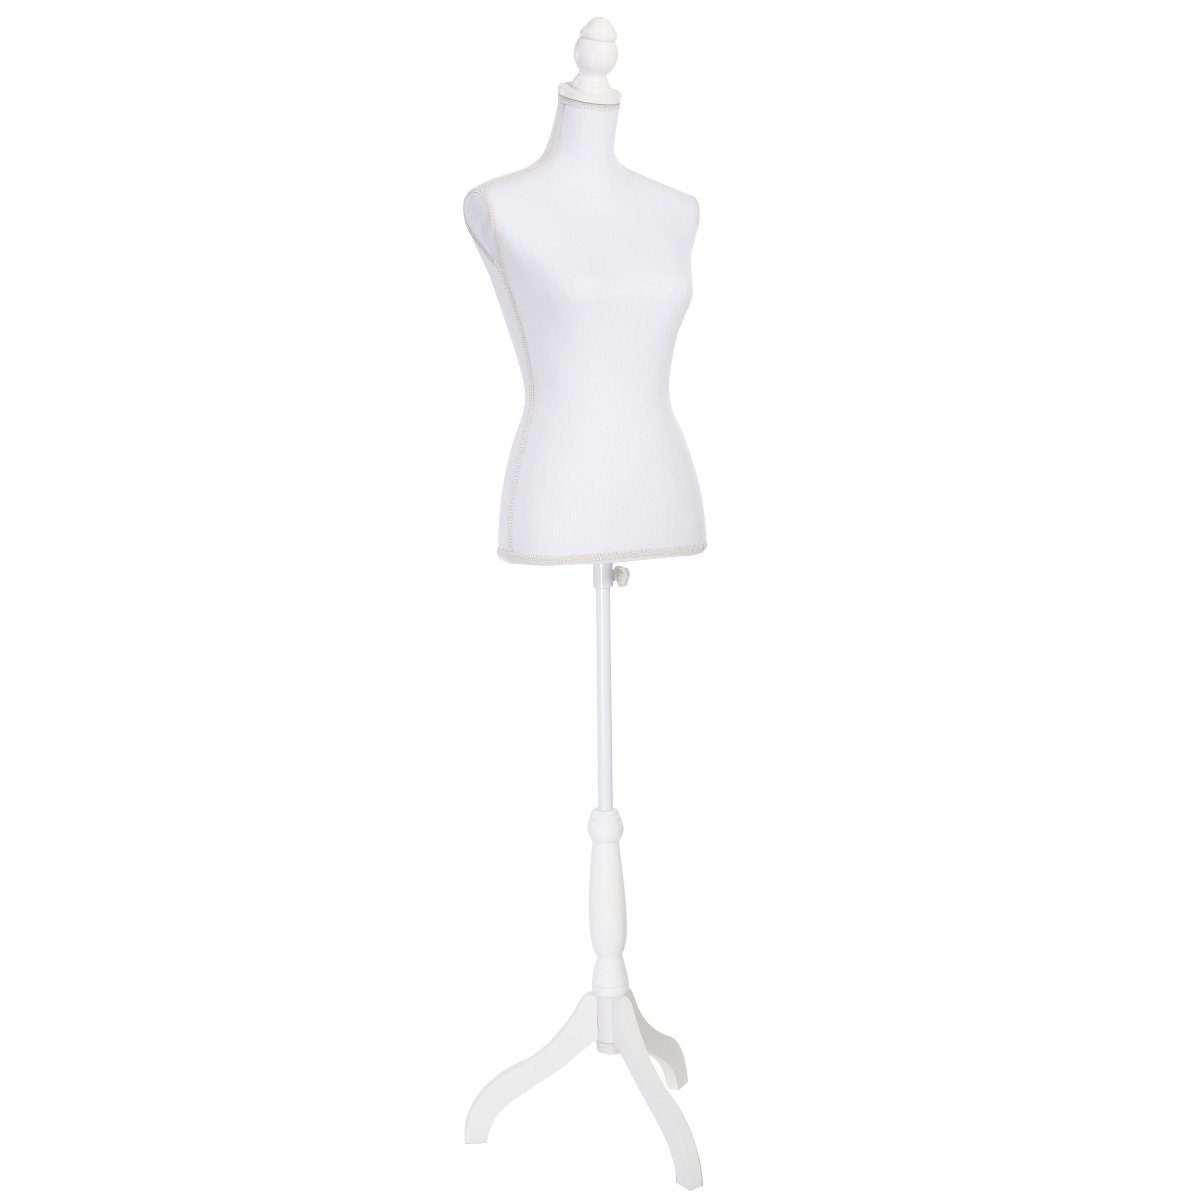 Giantex Female Mannequin Torso Body Dress Form with White Adjustable Tripod Stand, 51.2''-66.2'' Adjustable Height Non-Straight Pinnable for Pants Clothing Dress Jewelry Display (White) by Giantex